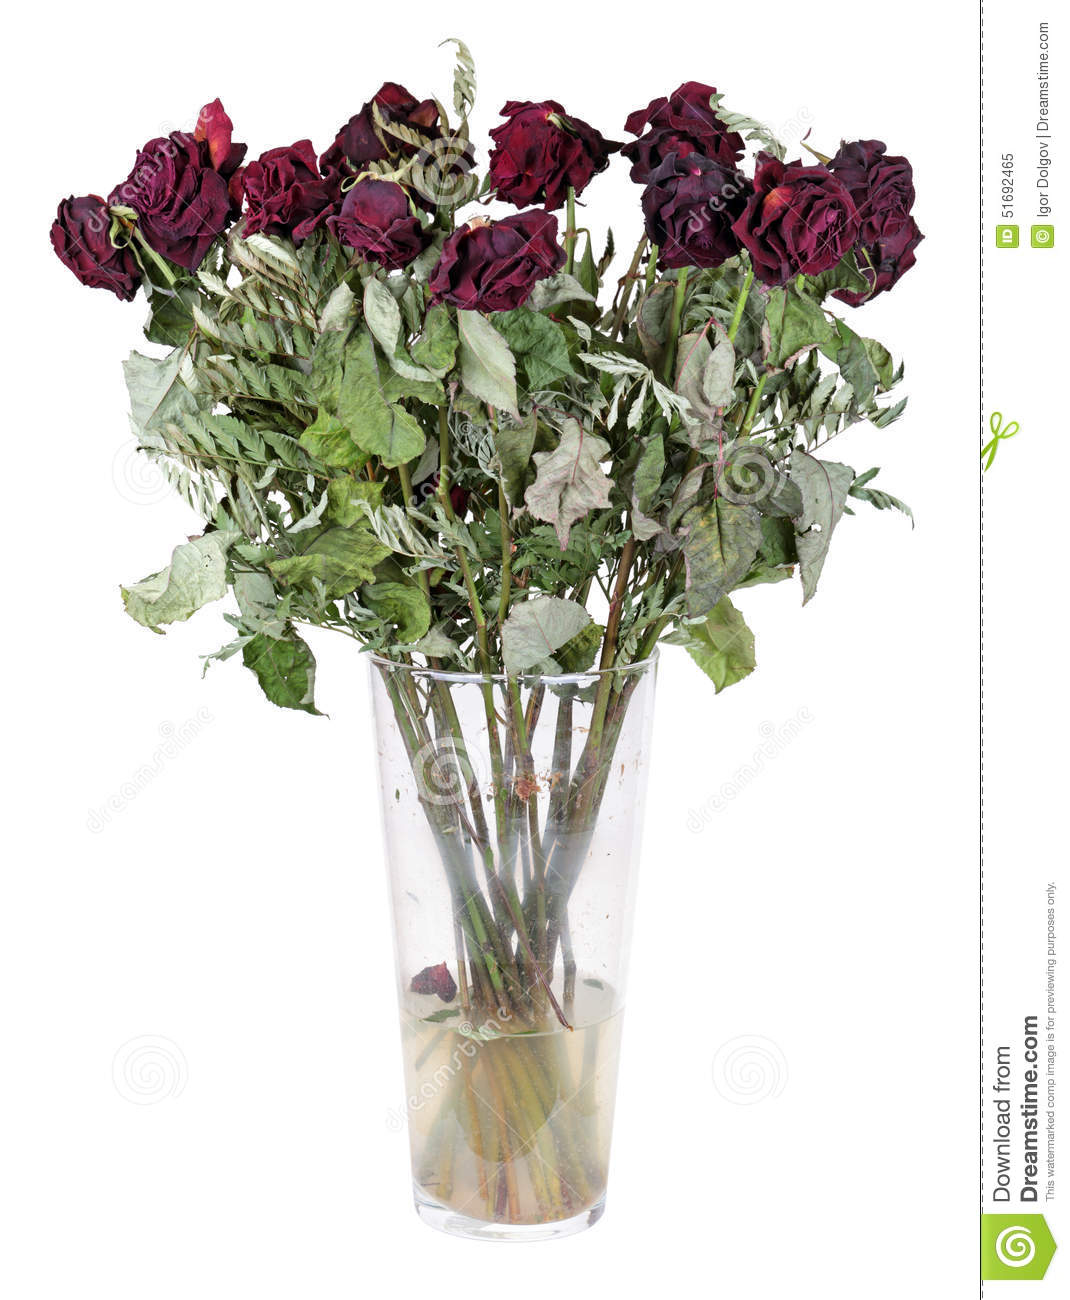 Dried flowers stock image image of burgundy decline 51692465 dried flowers reviewsmspy